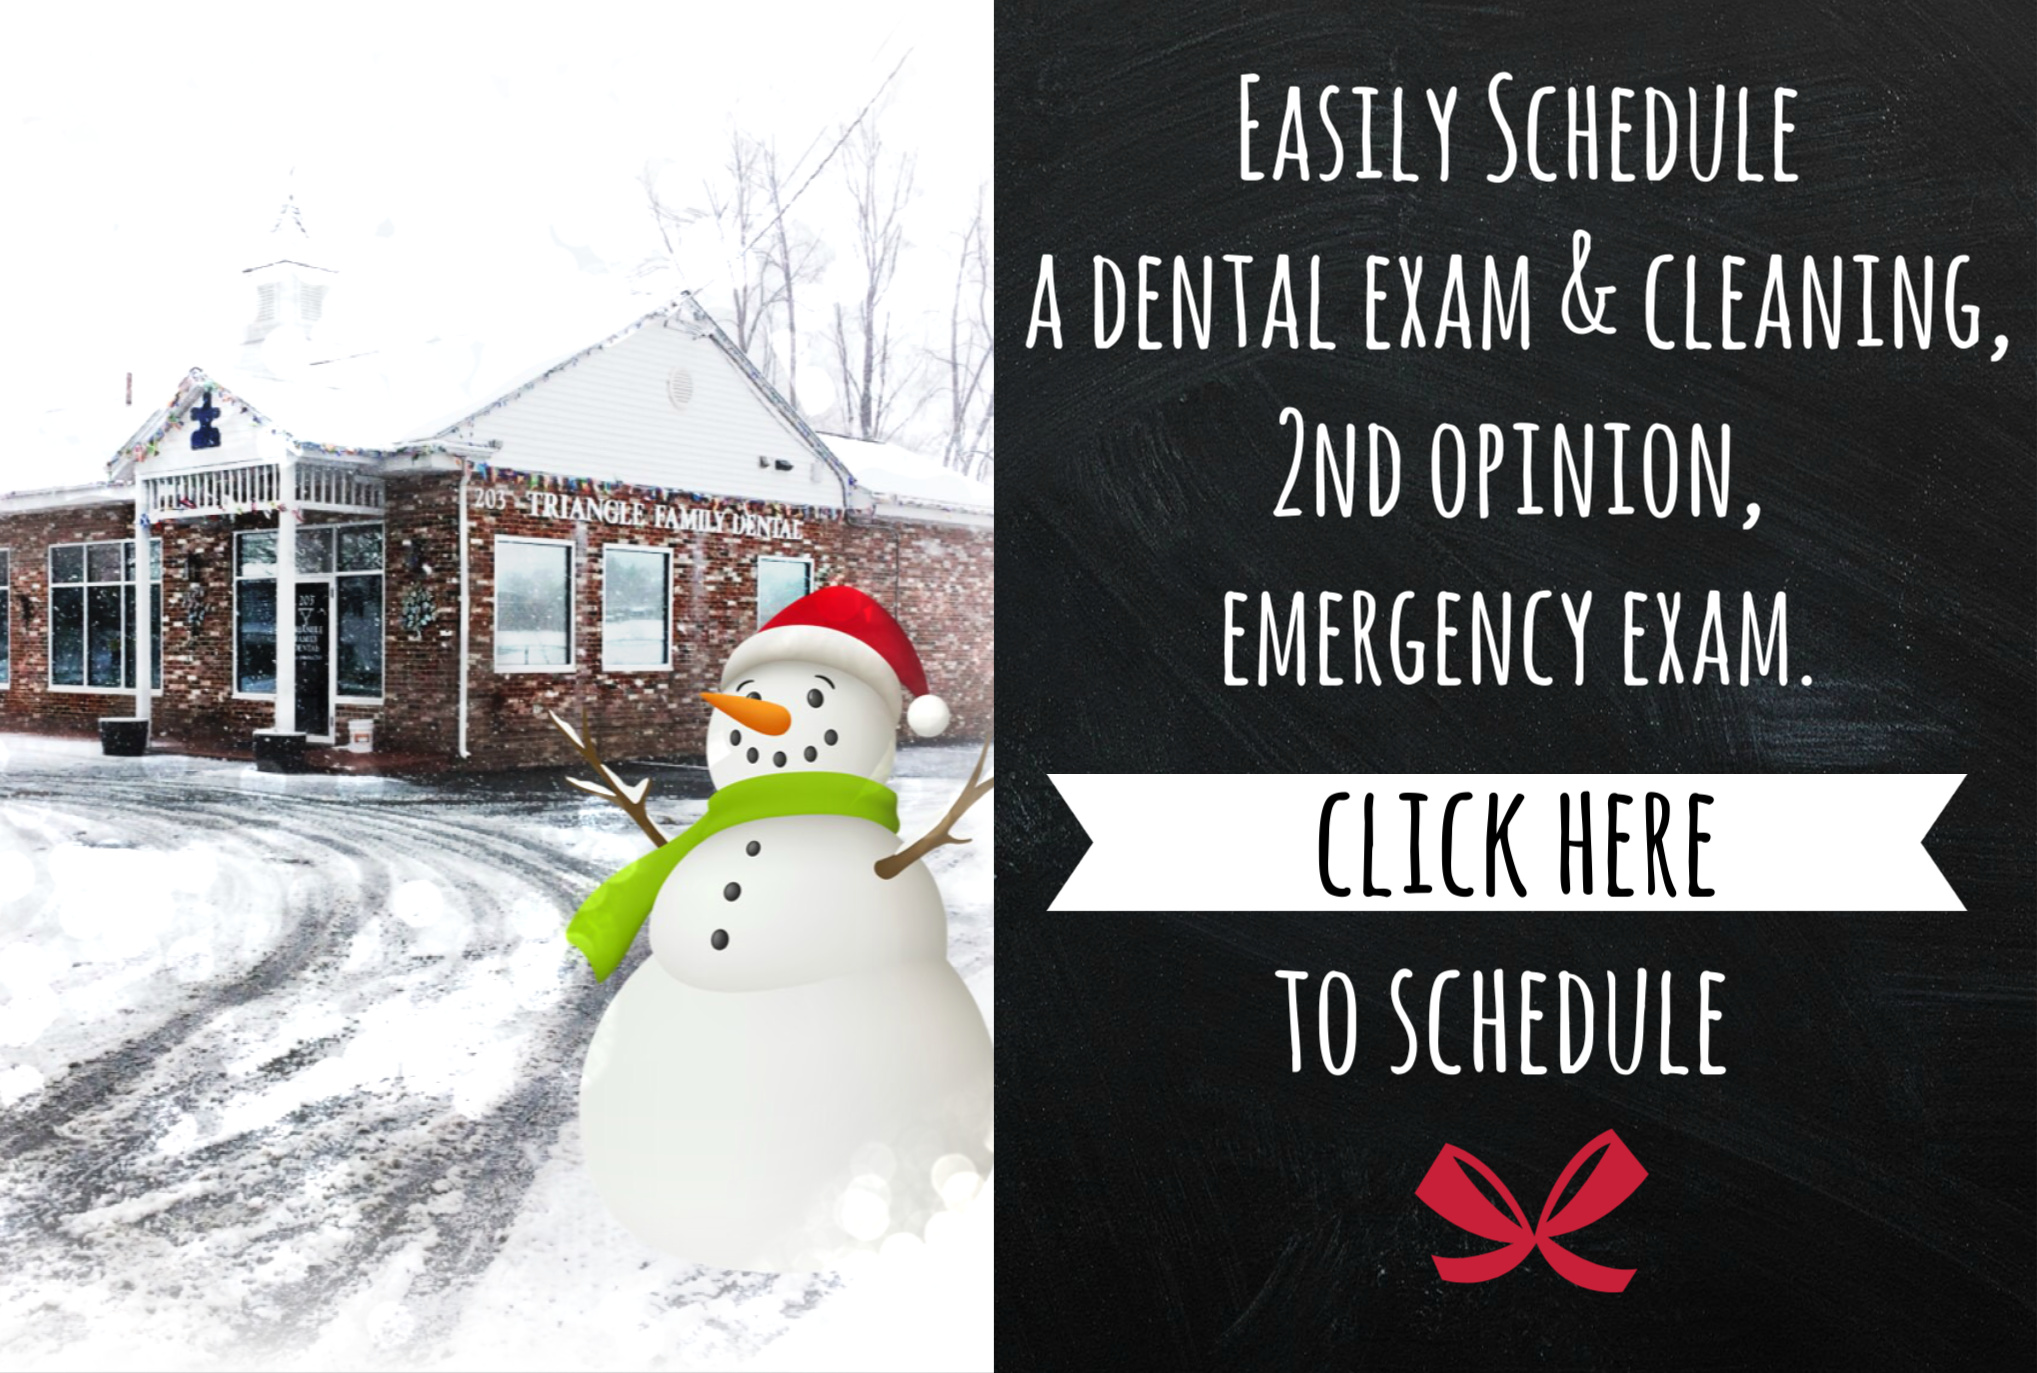 UMass Amherst Dentist